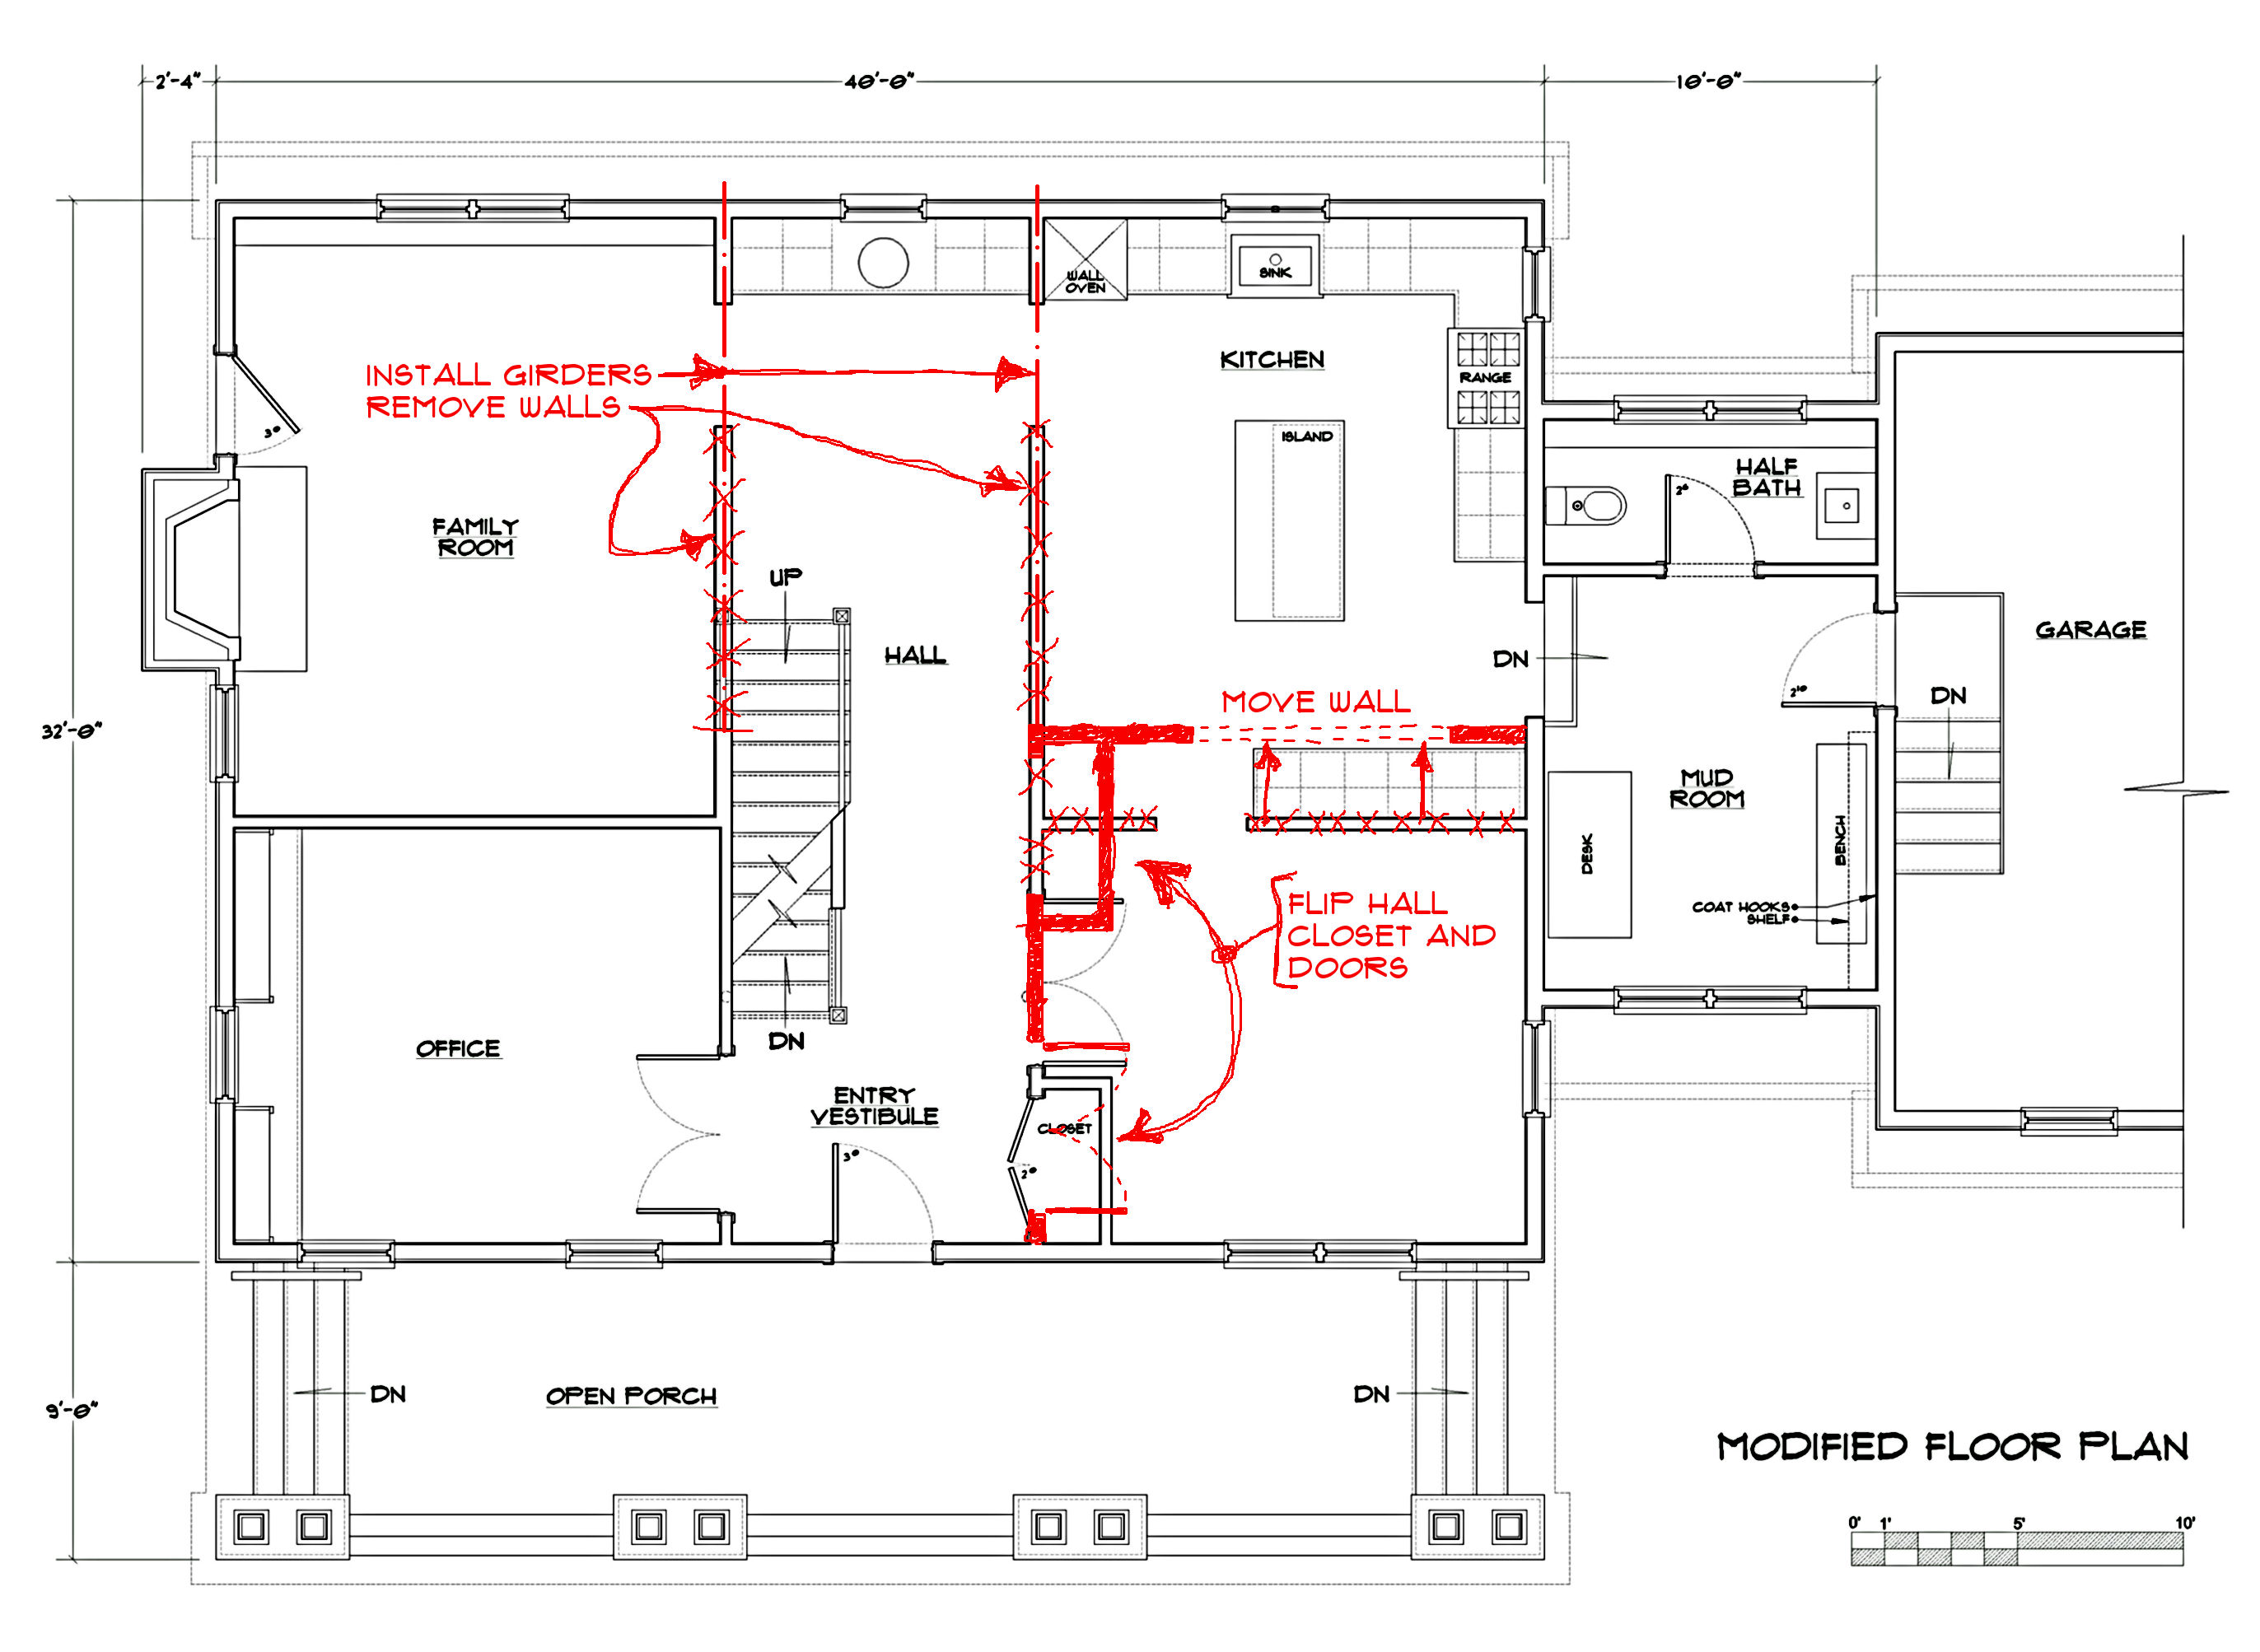 How to customize a spec home floor plan part 1 brad for What is a spec home